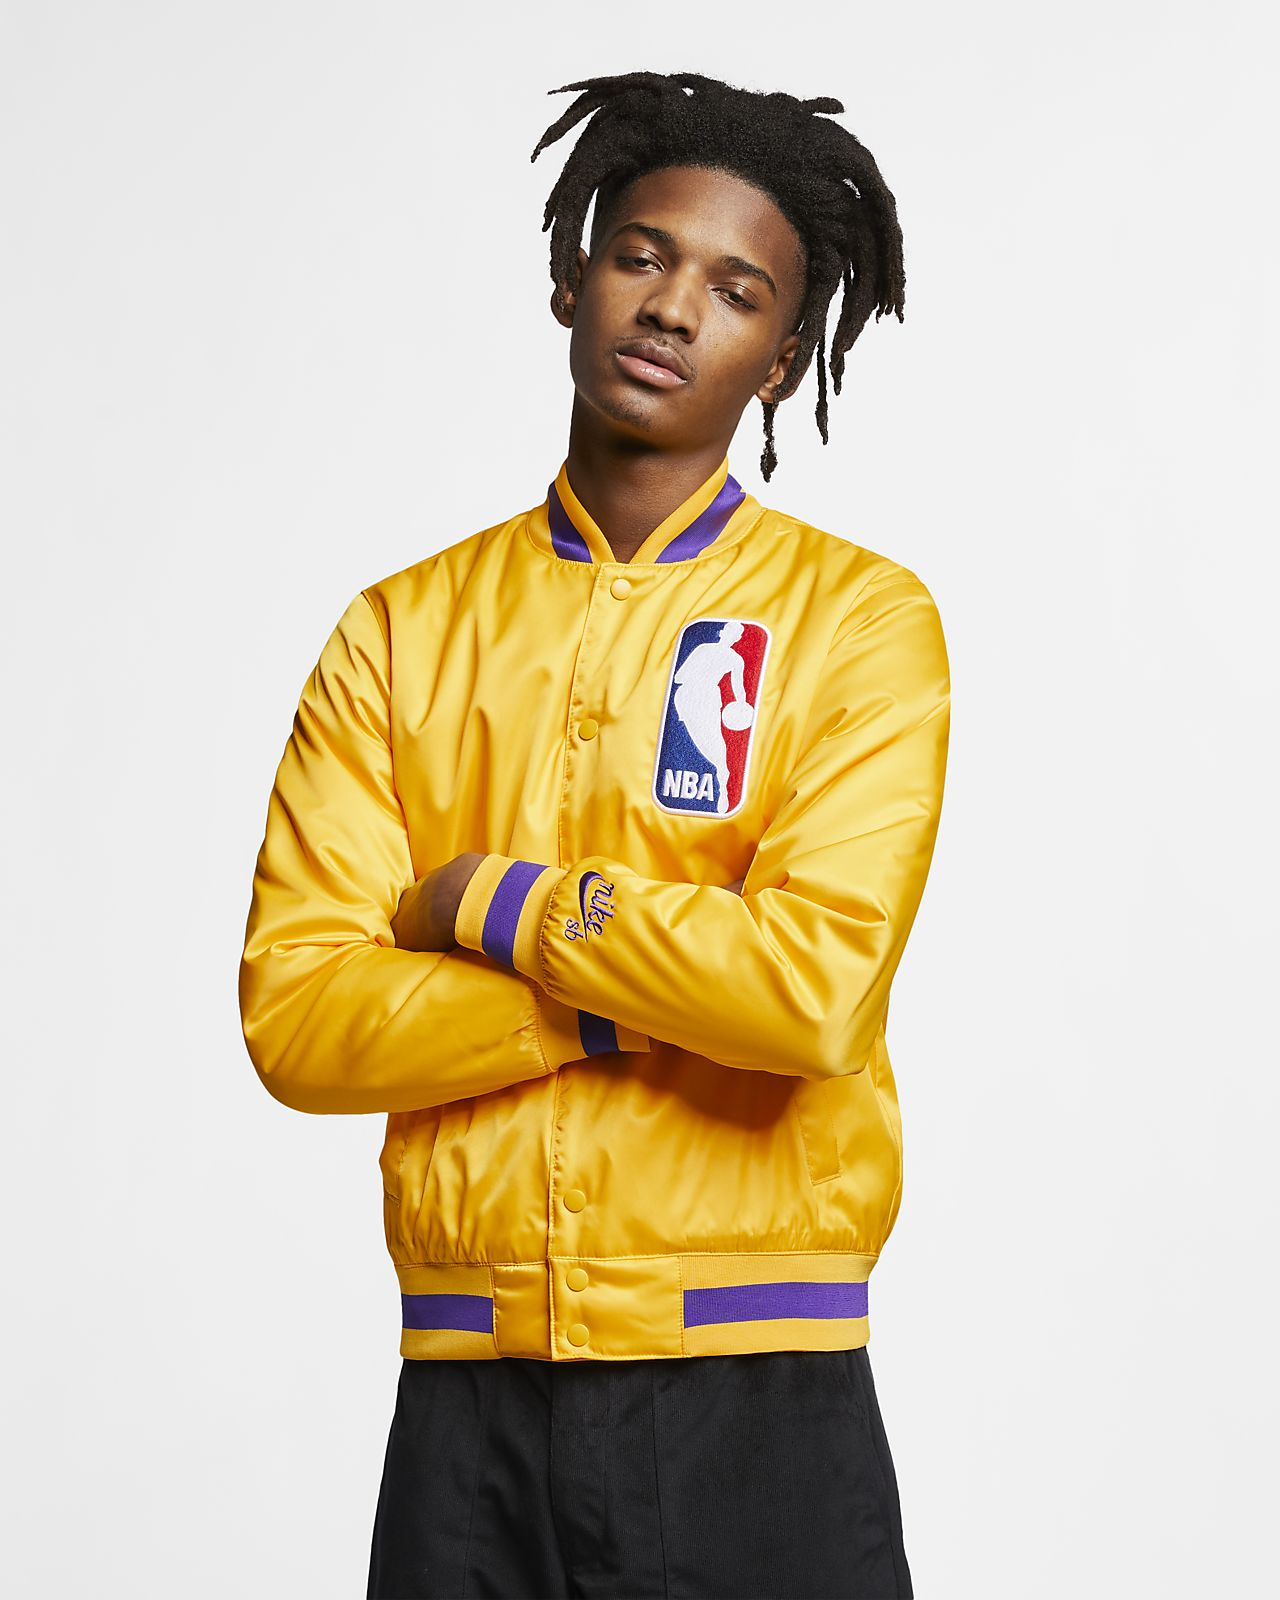 Nike SB x NBA Men's Bomber Jacket